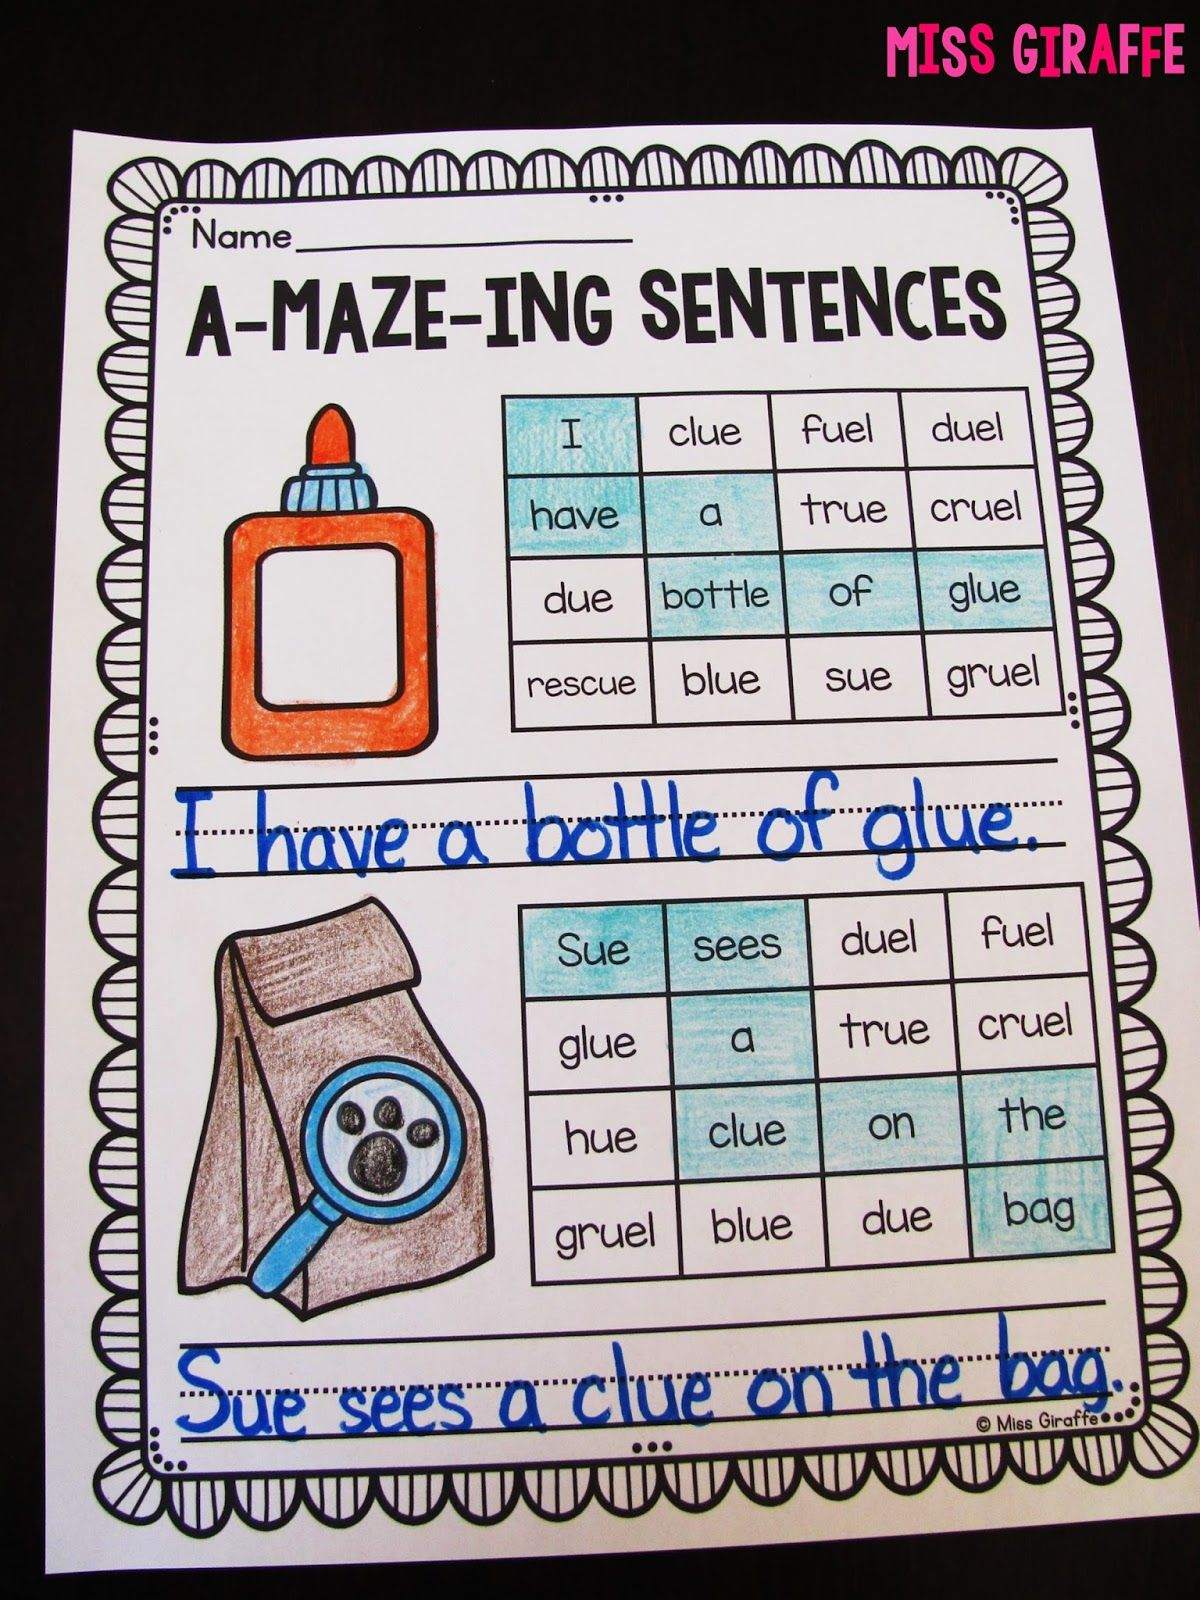 worksheet Ui Phonics Worksheets np amazeingsentences jpg phonics pinterest a maze ing sentences are the best for challenging your high students or fast finishers kids read through with words w